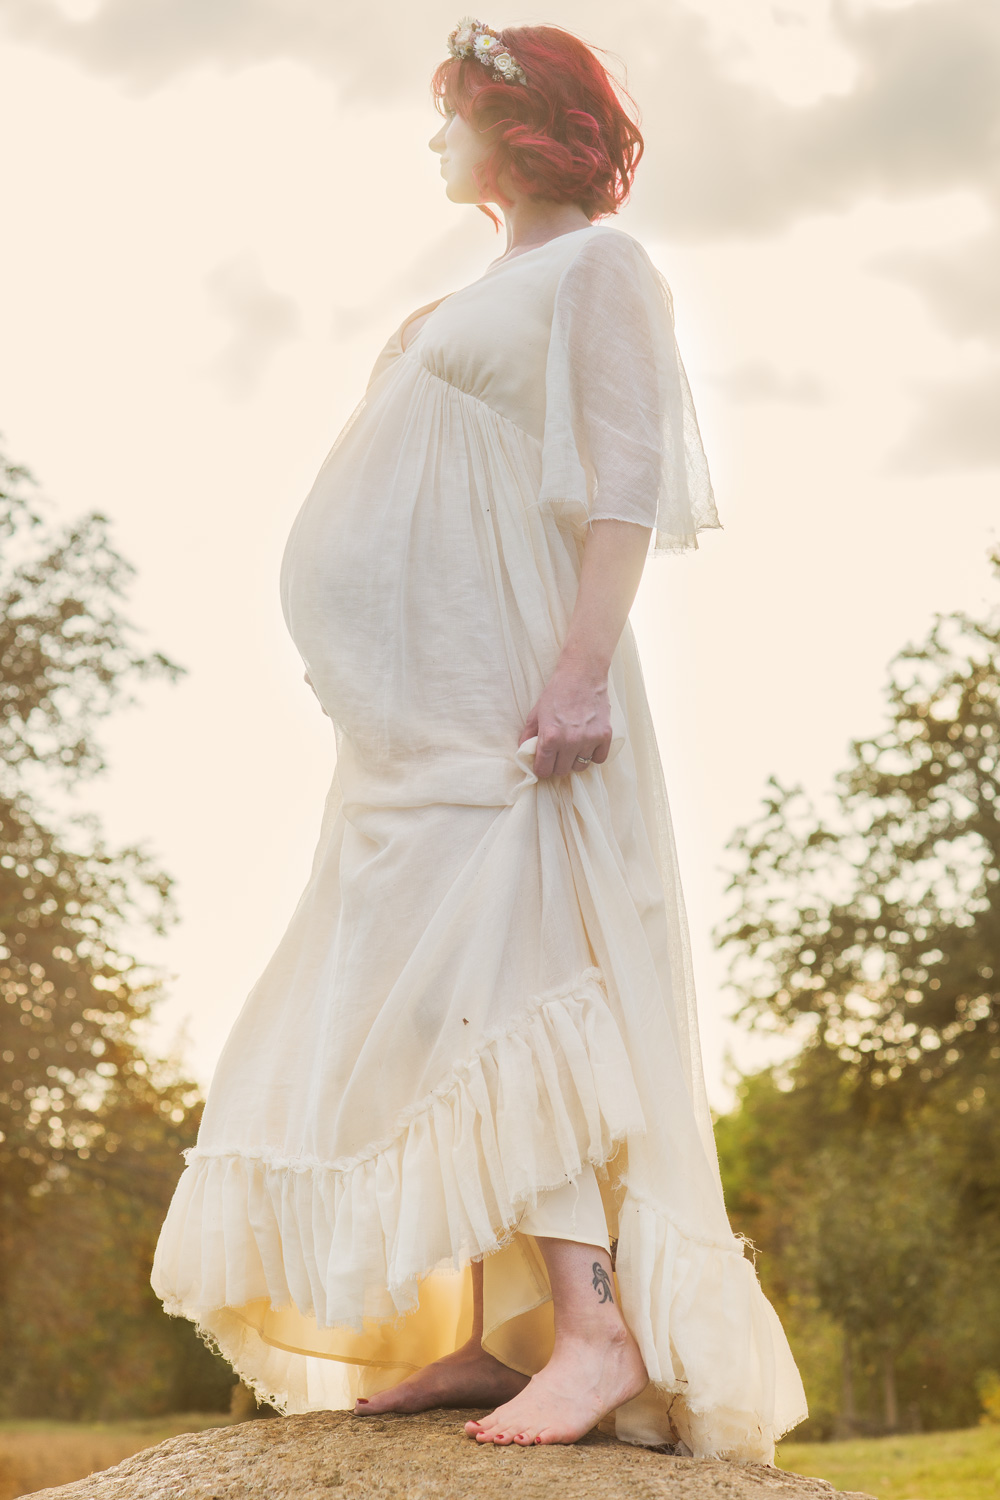 Outdoors portrait of pregnant woman.